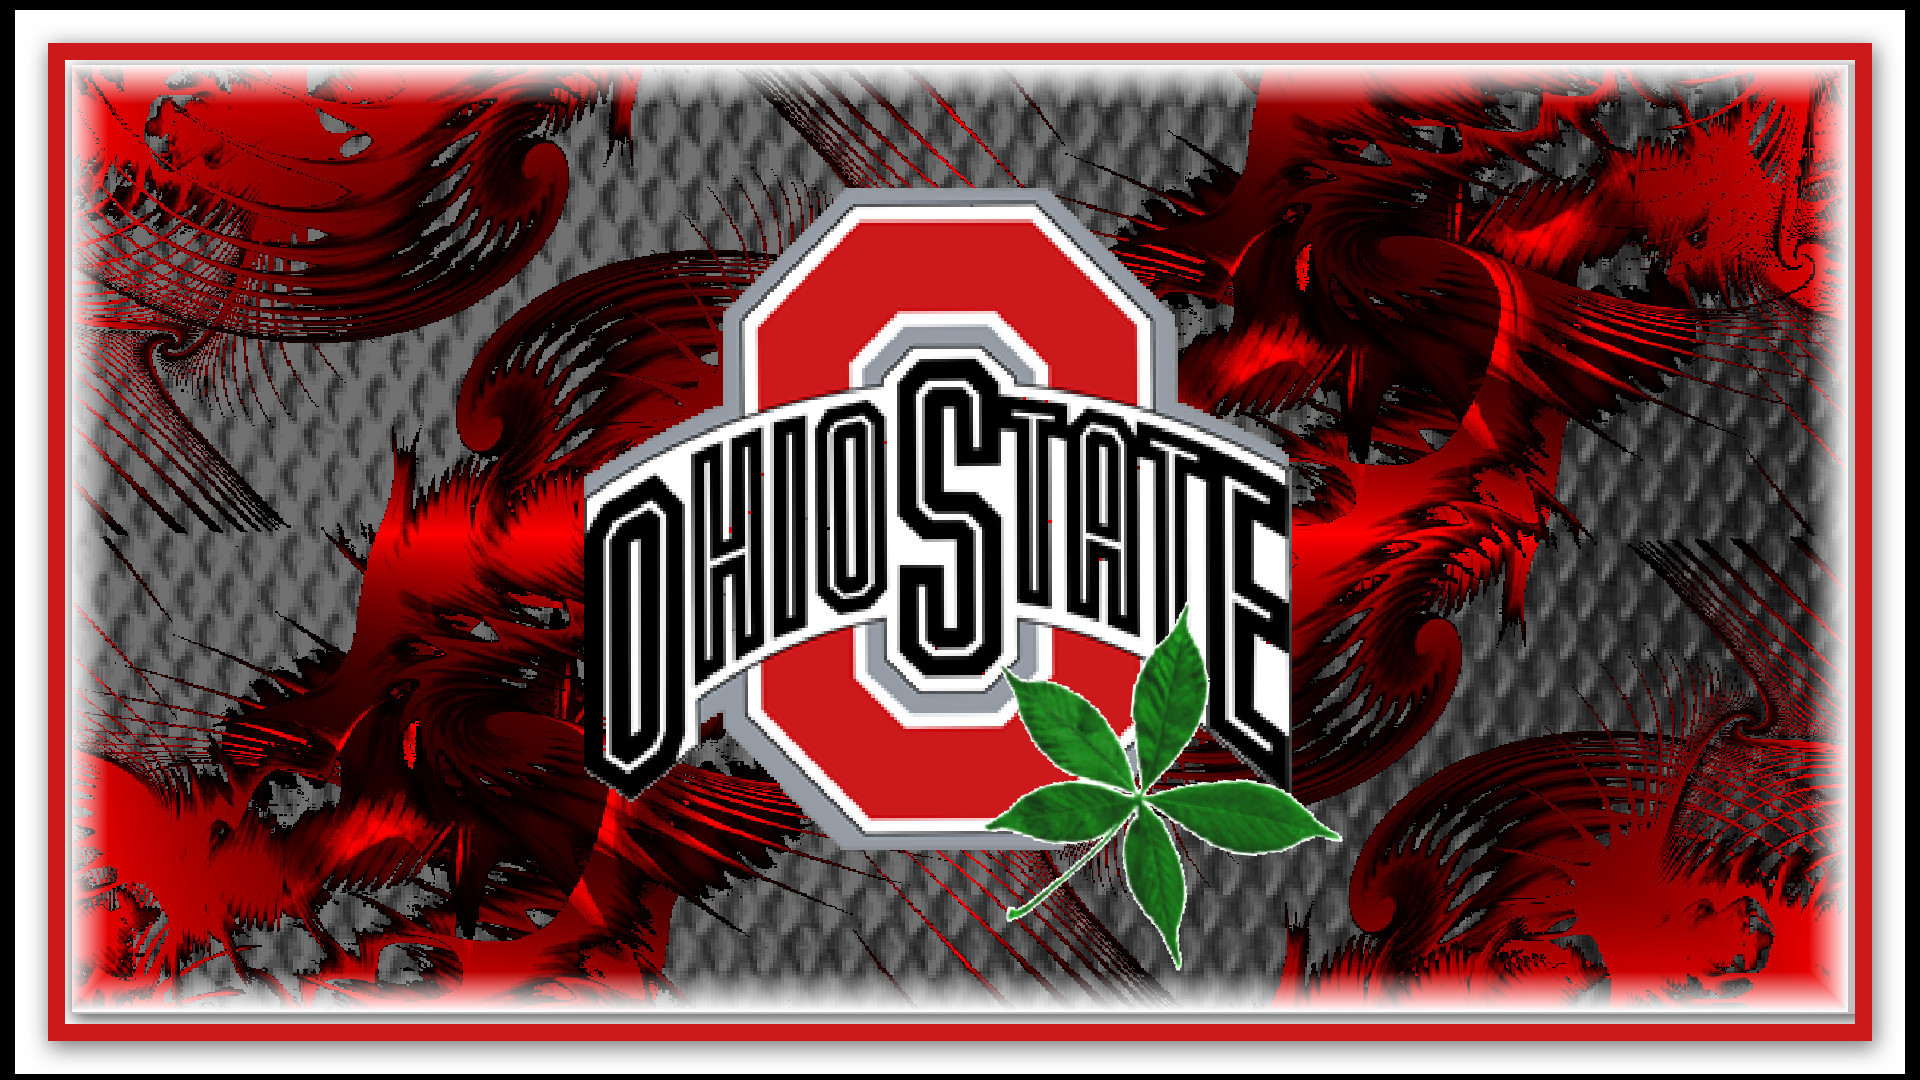 1920x1080 Ohio State Football Wallpaper: red block o ohio state with buckeye leaf